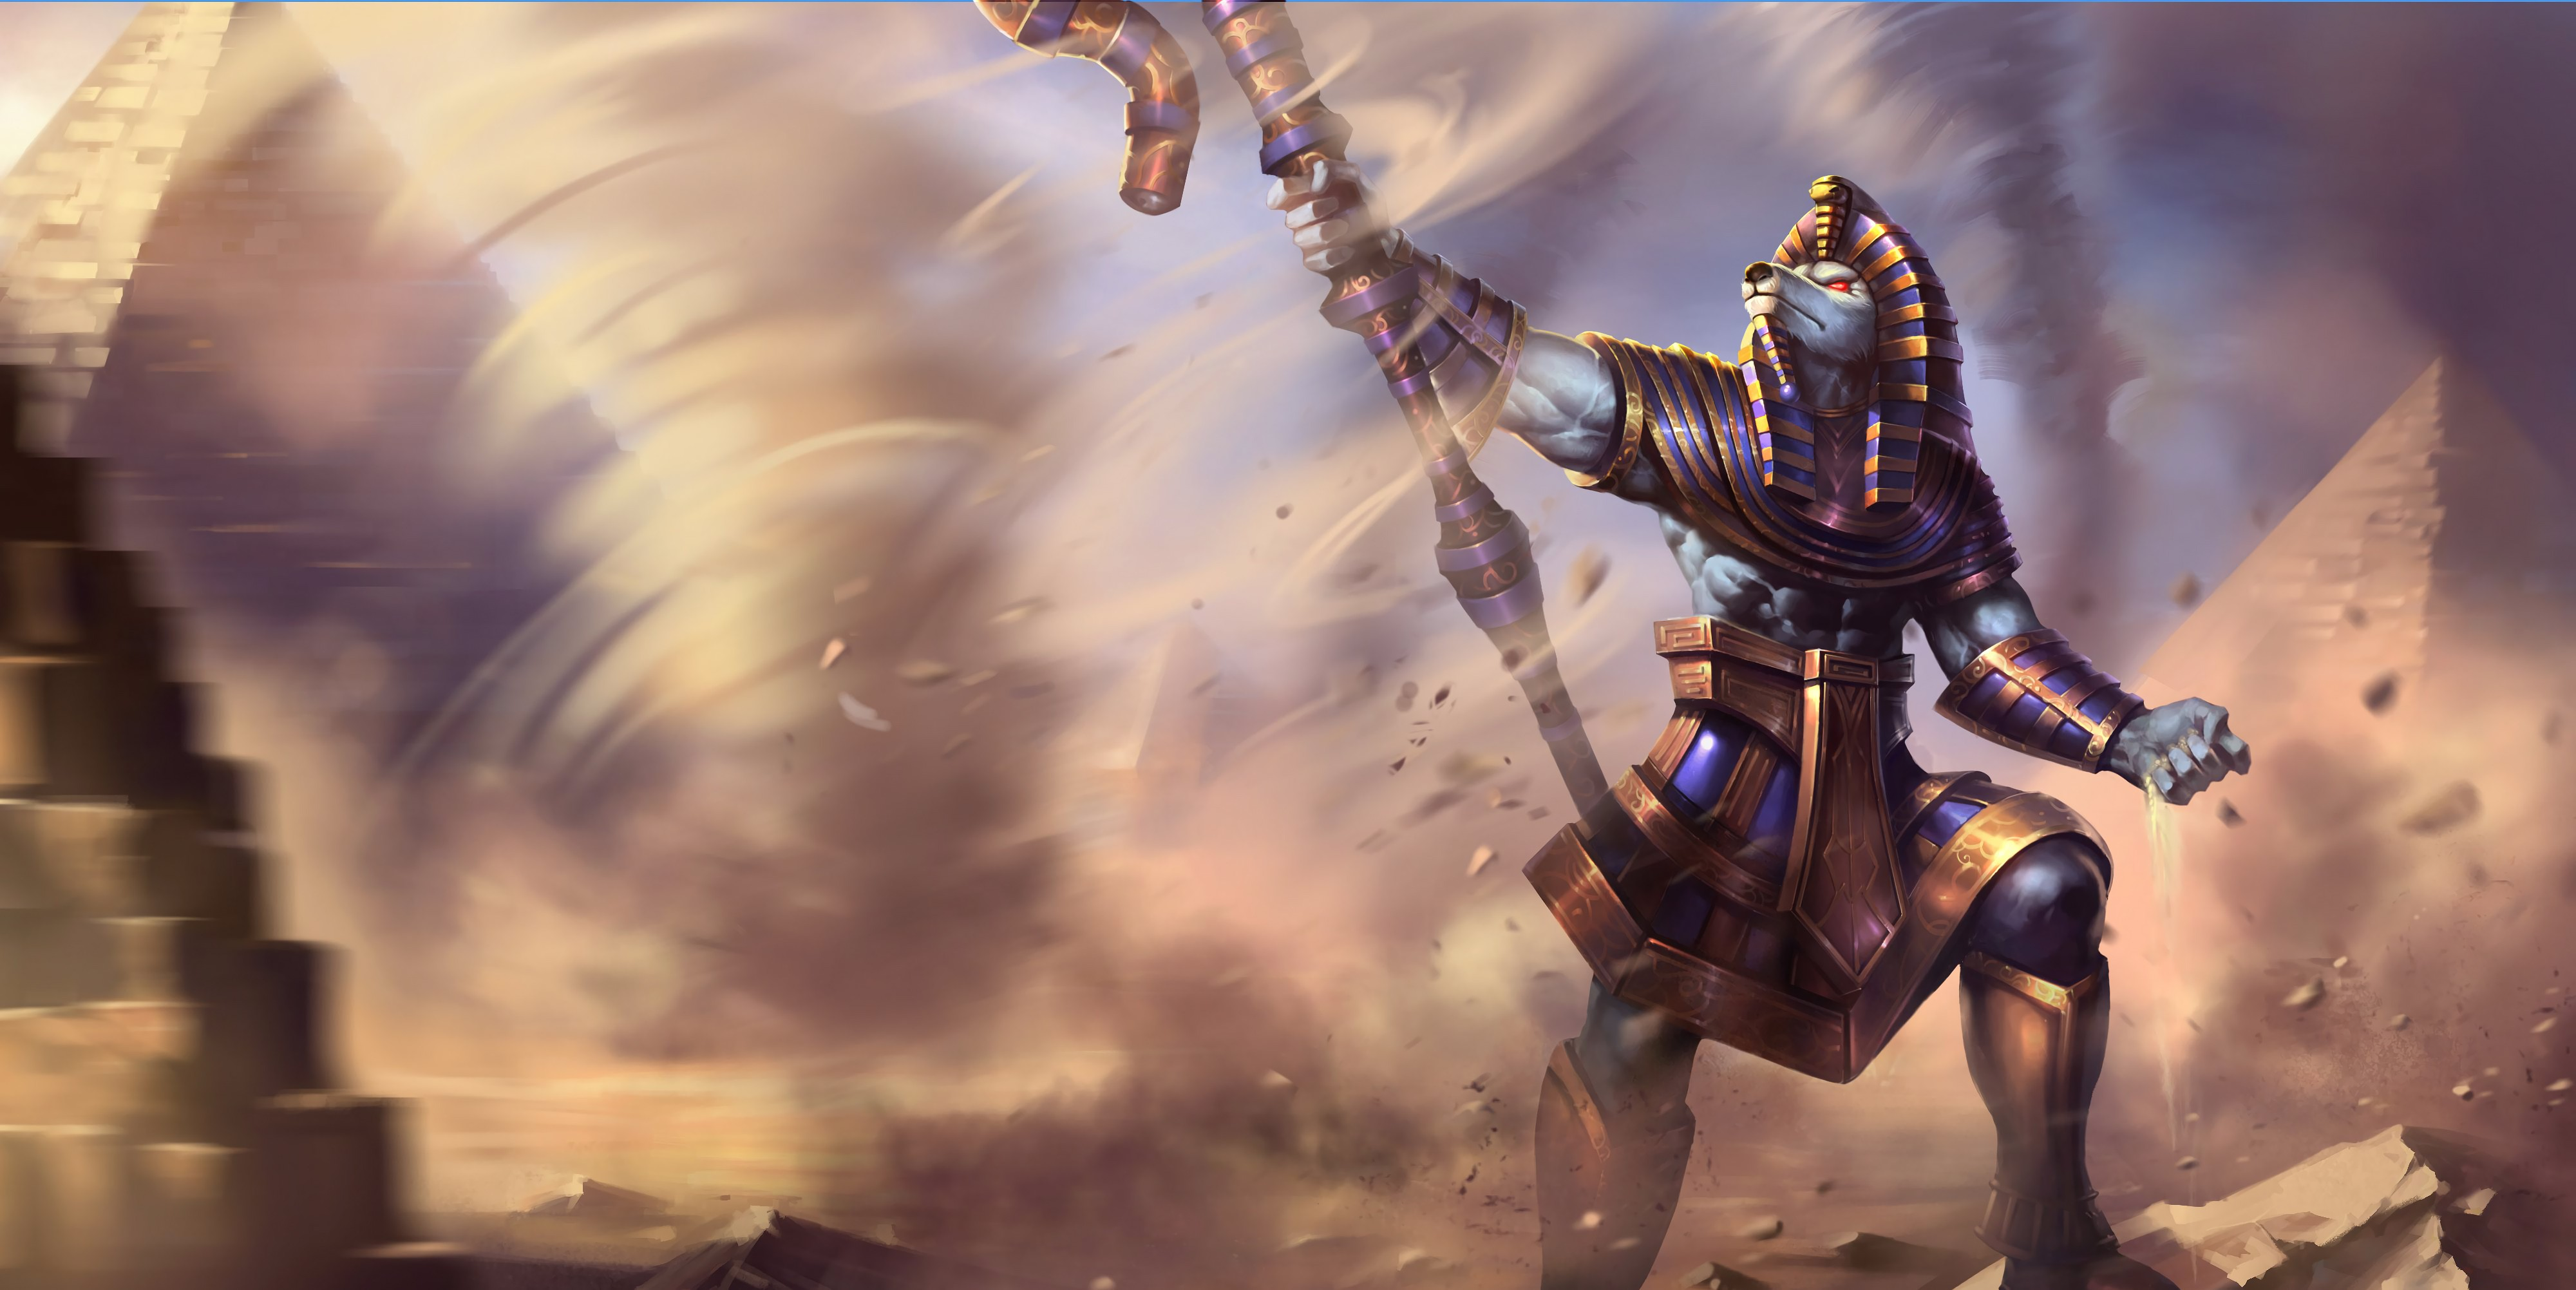 Pharaoh Nasus Splash Art HD 4k Wallpaper Background Official Art Artwork League of Legends lol